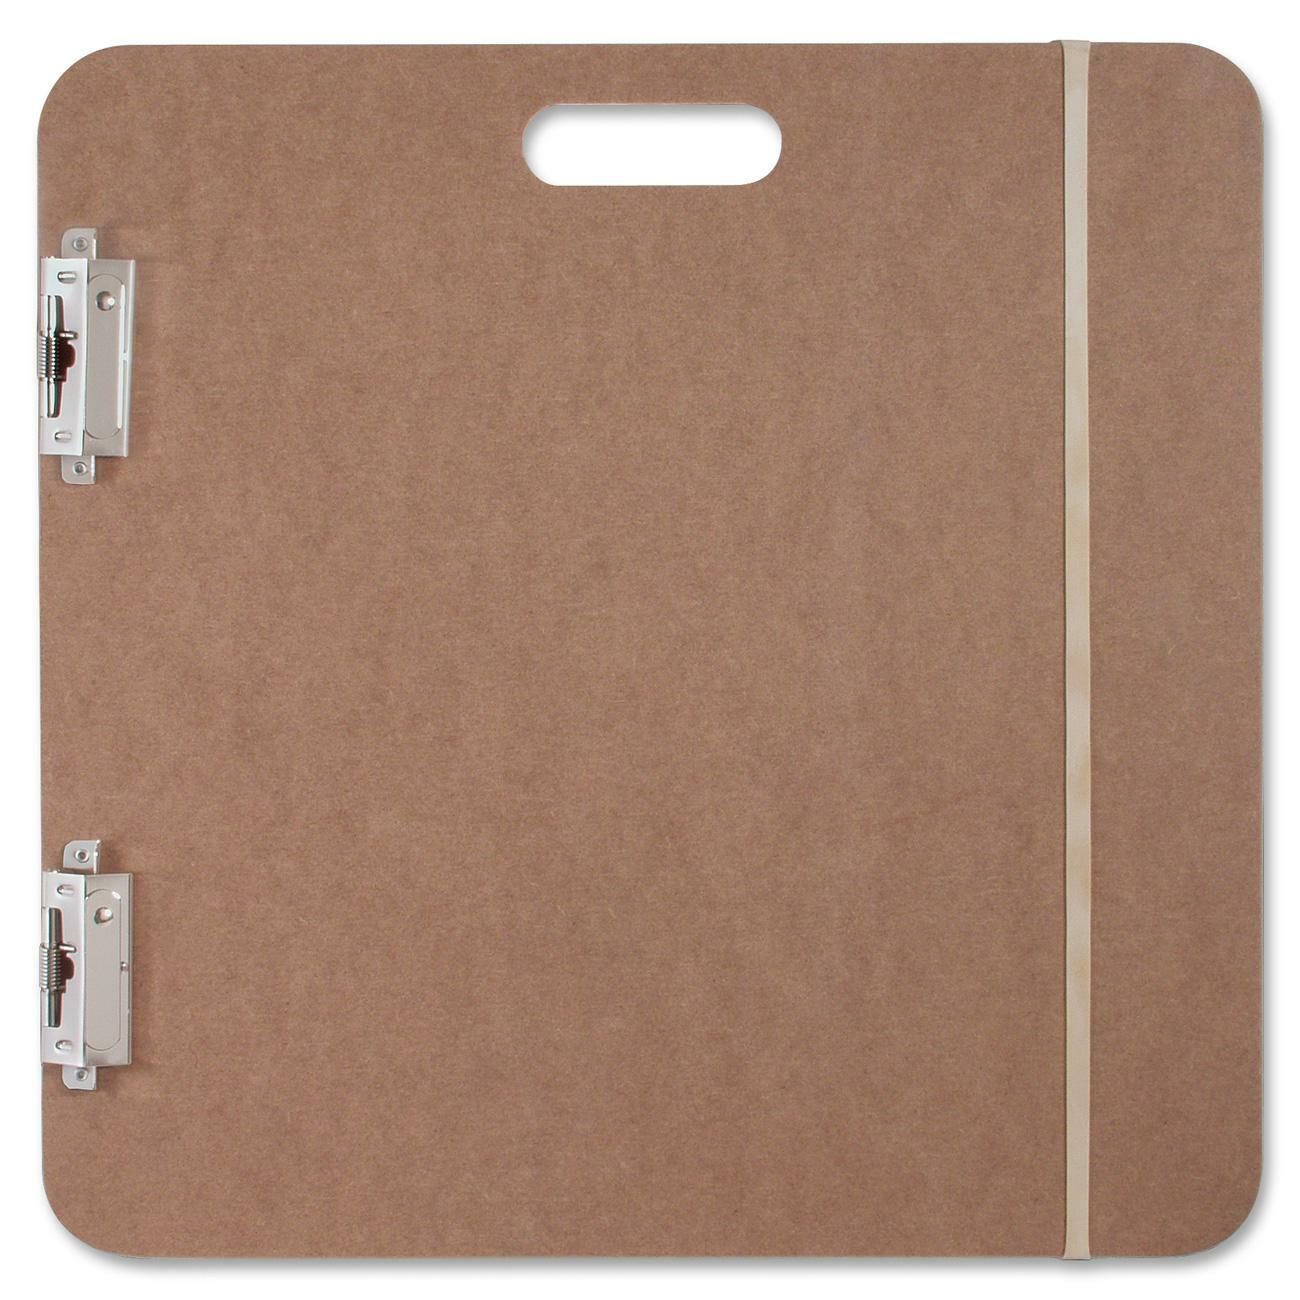 Extra Large Sketchboard Is Larger Than Usual Hardboard Clipboards So It Ideal For Writing Or Drawing On Double Wide Doents Papers